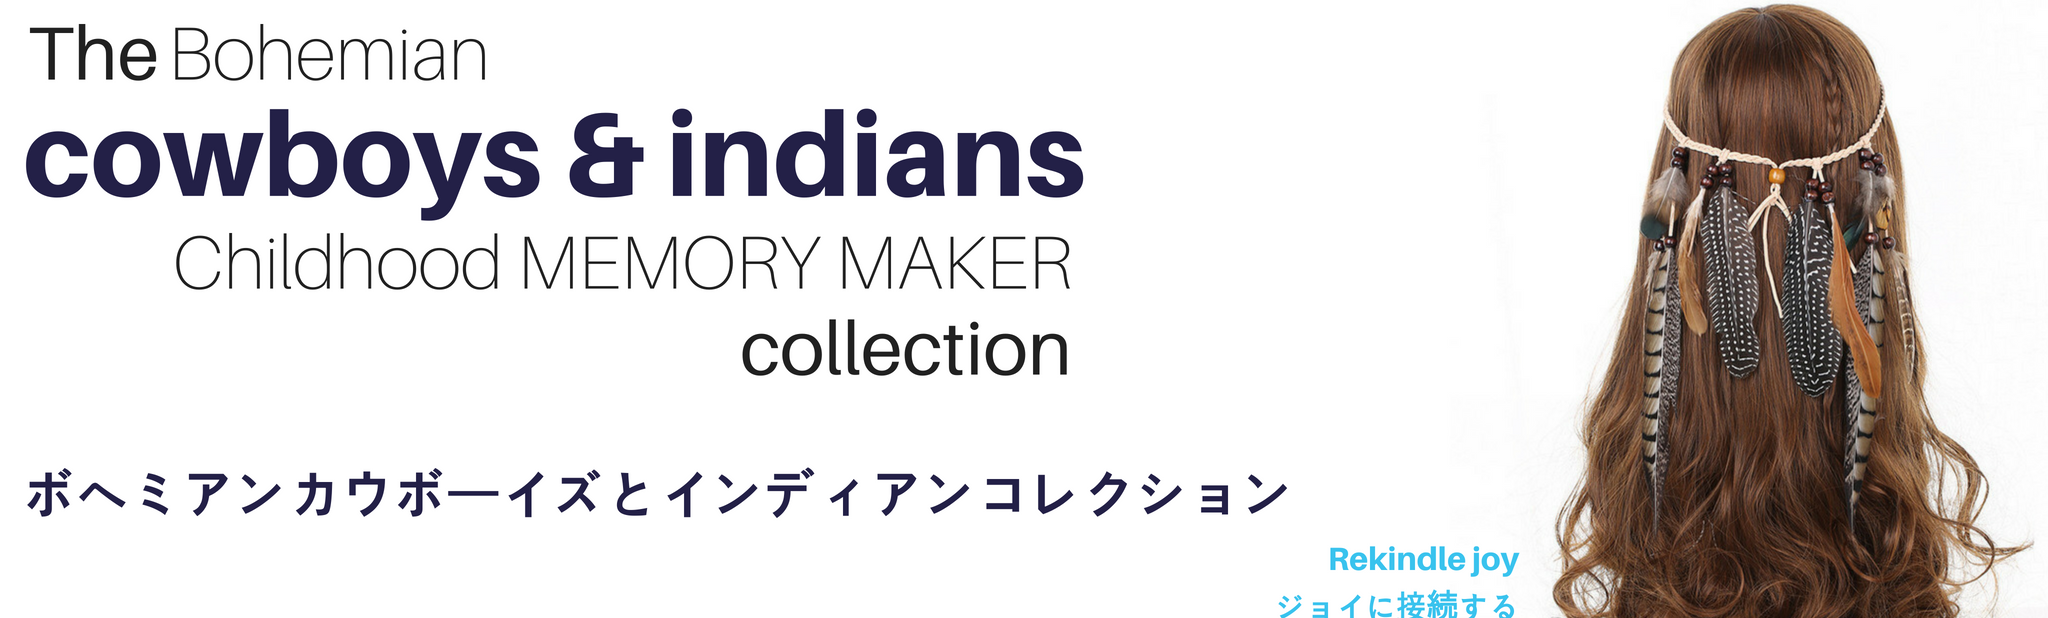 miTeigi The bohemian cowboys and Indians childhood memory maker collection   ボヘミアンカウボーイとインディアンの子供時代の思い出コレクション。